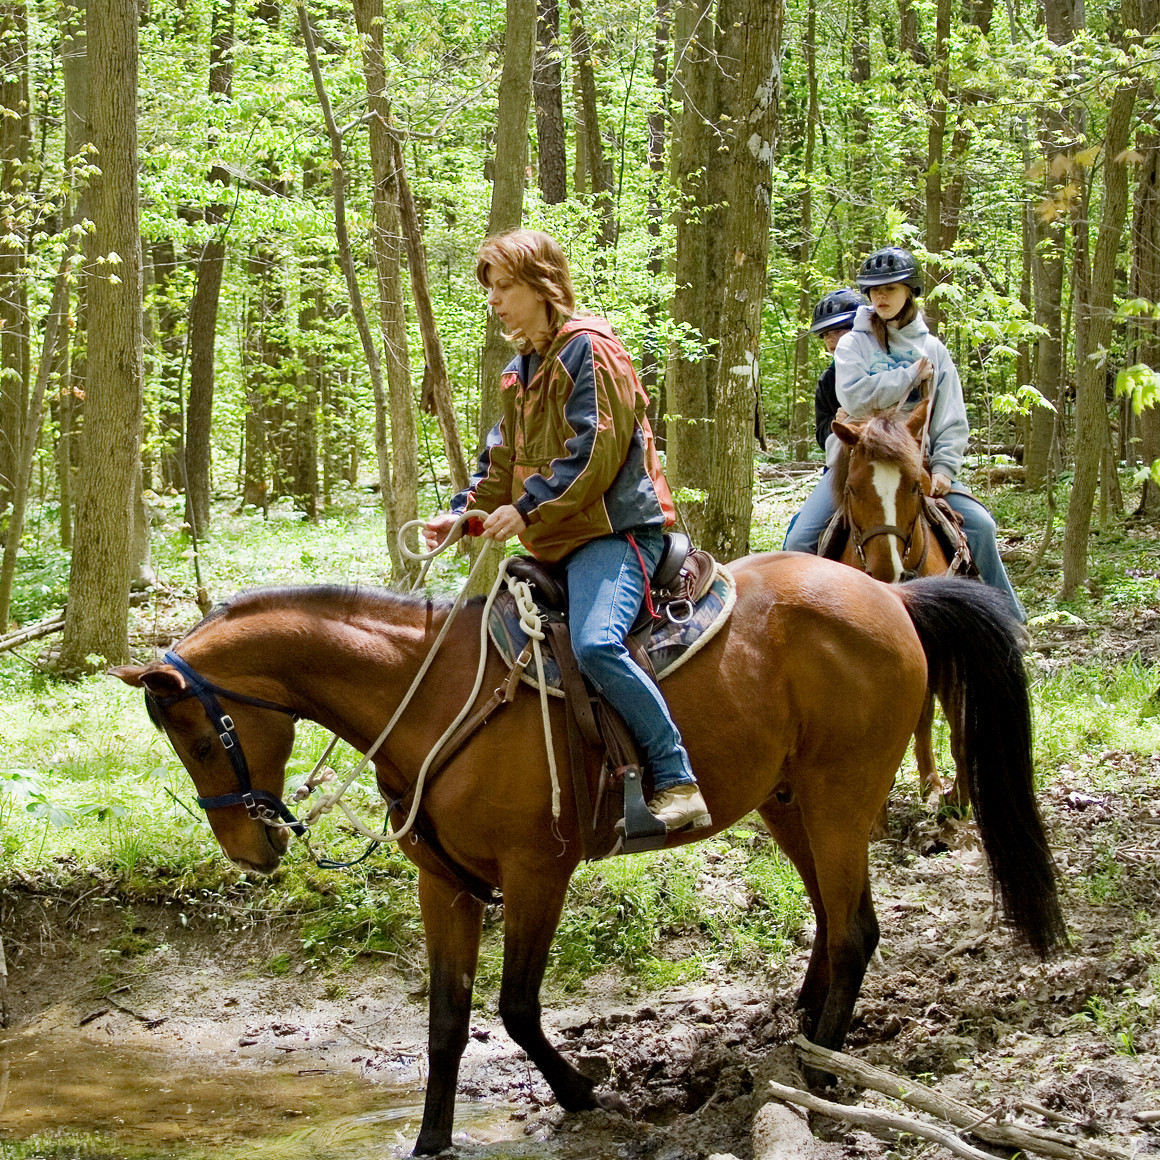 ACE-Adventure-Resort-Horseback-Riding-Trails.jpg